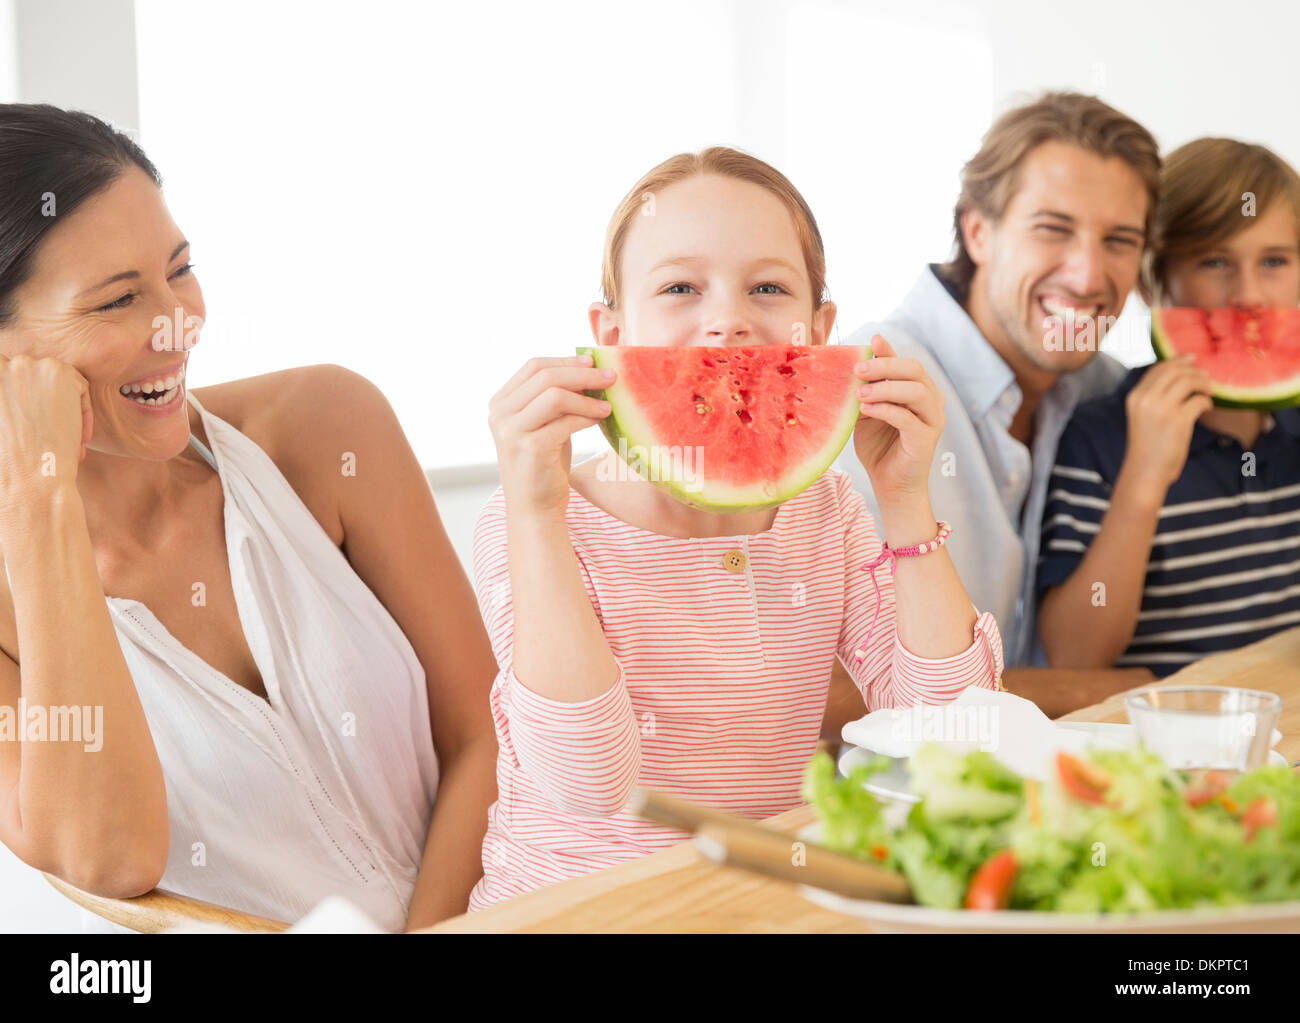 Family eating watermelon at table Photo Stock